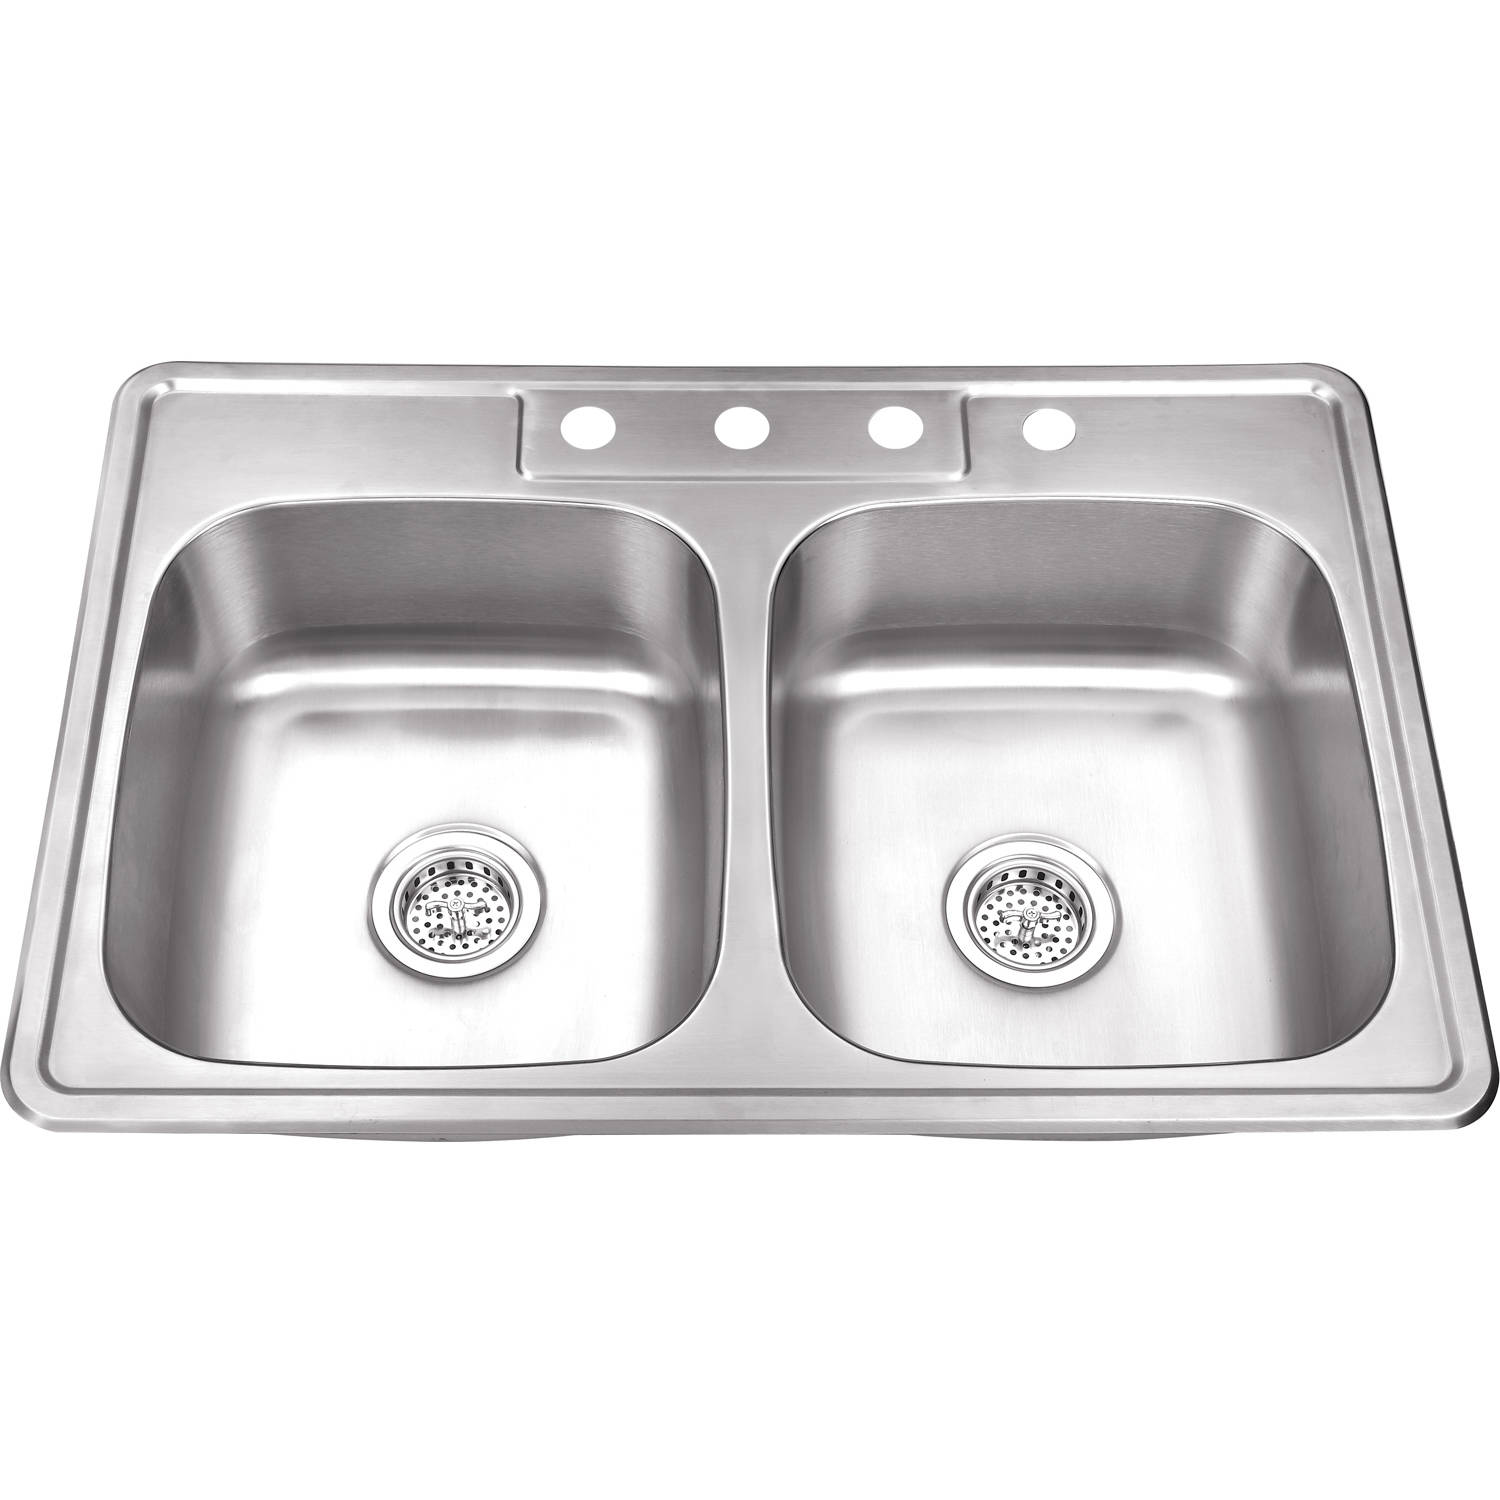 Magnus Sinks 33-in x 22-in 20 Gauge Stainless Steel Double Bowl Kitchen Sink